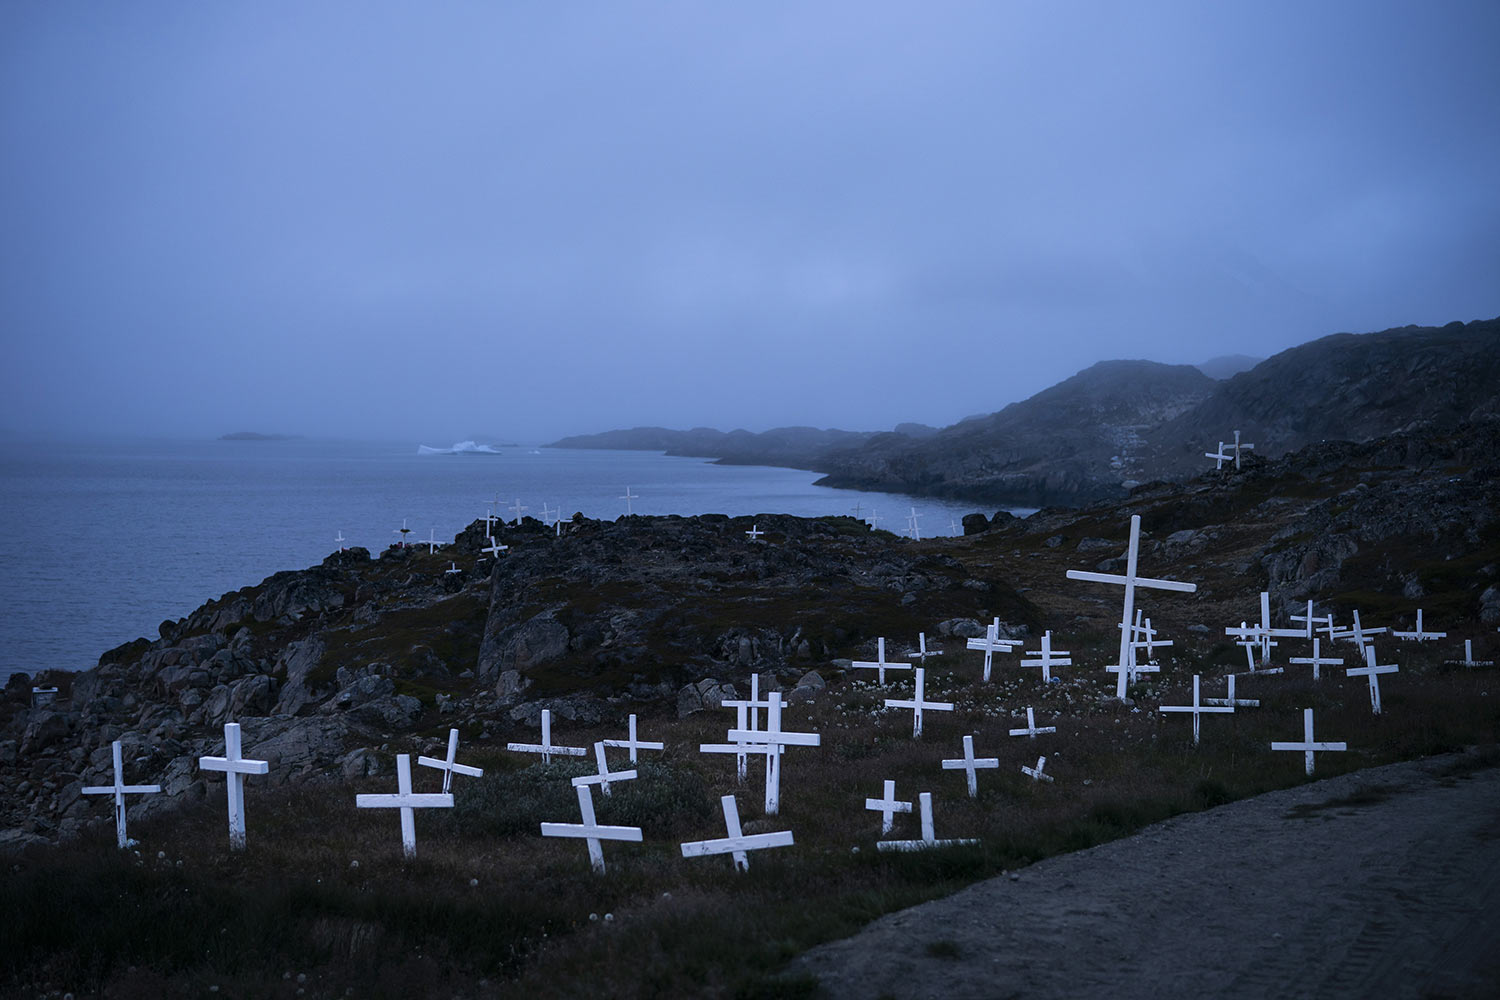 Crosses stand in a cemetery as an iceberg floats in the distance during a foggy morning on Aug. 15, 2019, in Kulusuk, Greenland. Kulusuk's resident Mugu Utuaq says the winter that used to last for as long as 10 months when he was a boy can now be as short as five months. Scientists are hard at work in Greenland, trying to understand the alarmingly rapid melting of the ice. (AP Photo/Felipe Dana)